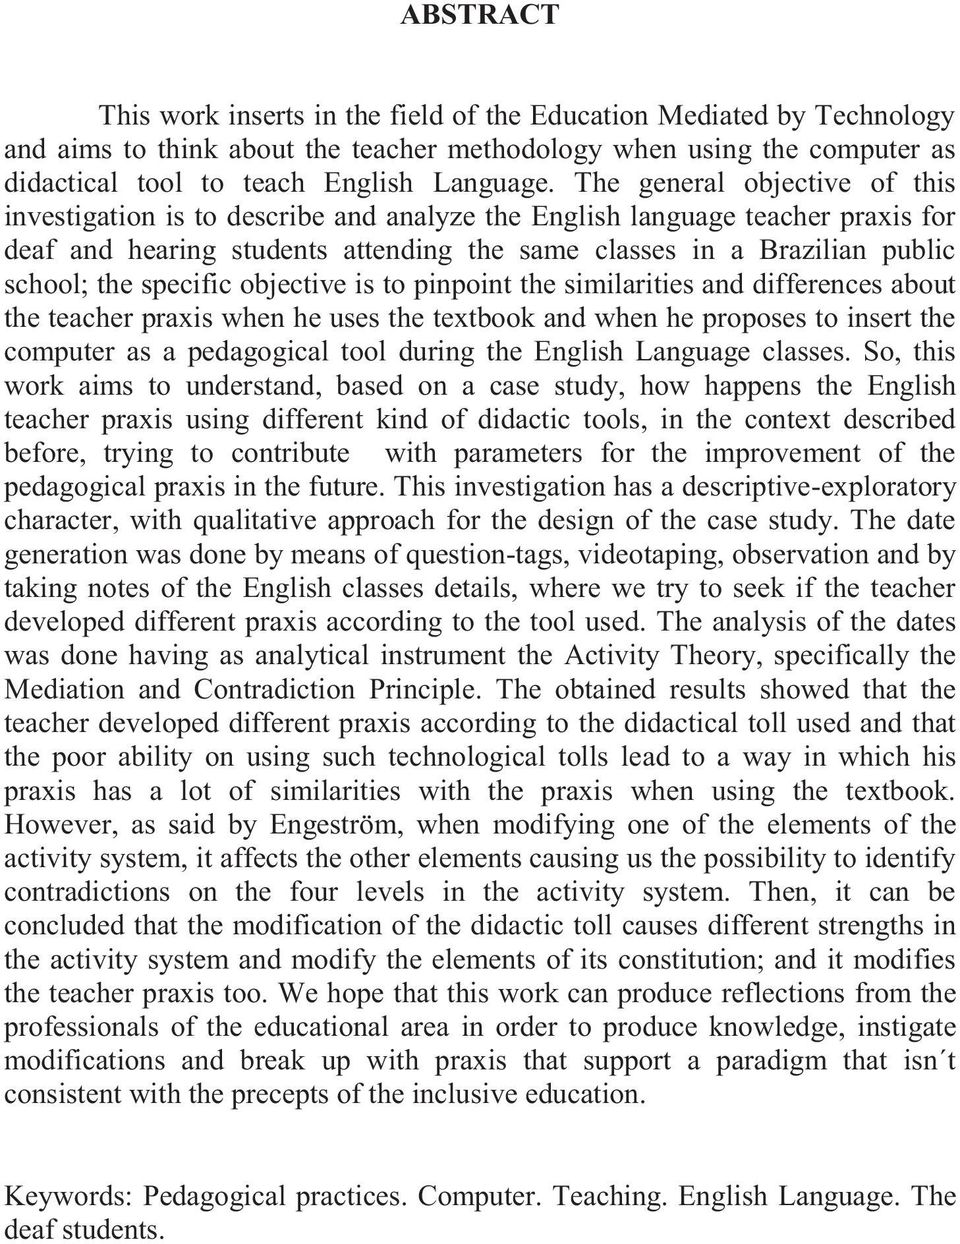 specific objective is to pinpoint the similarities and differences about the teacher praxis when he uses the textbook and when he proposes to insert the computer as a pedagogical tool during the